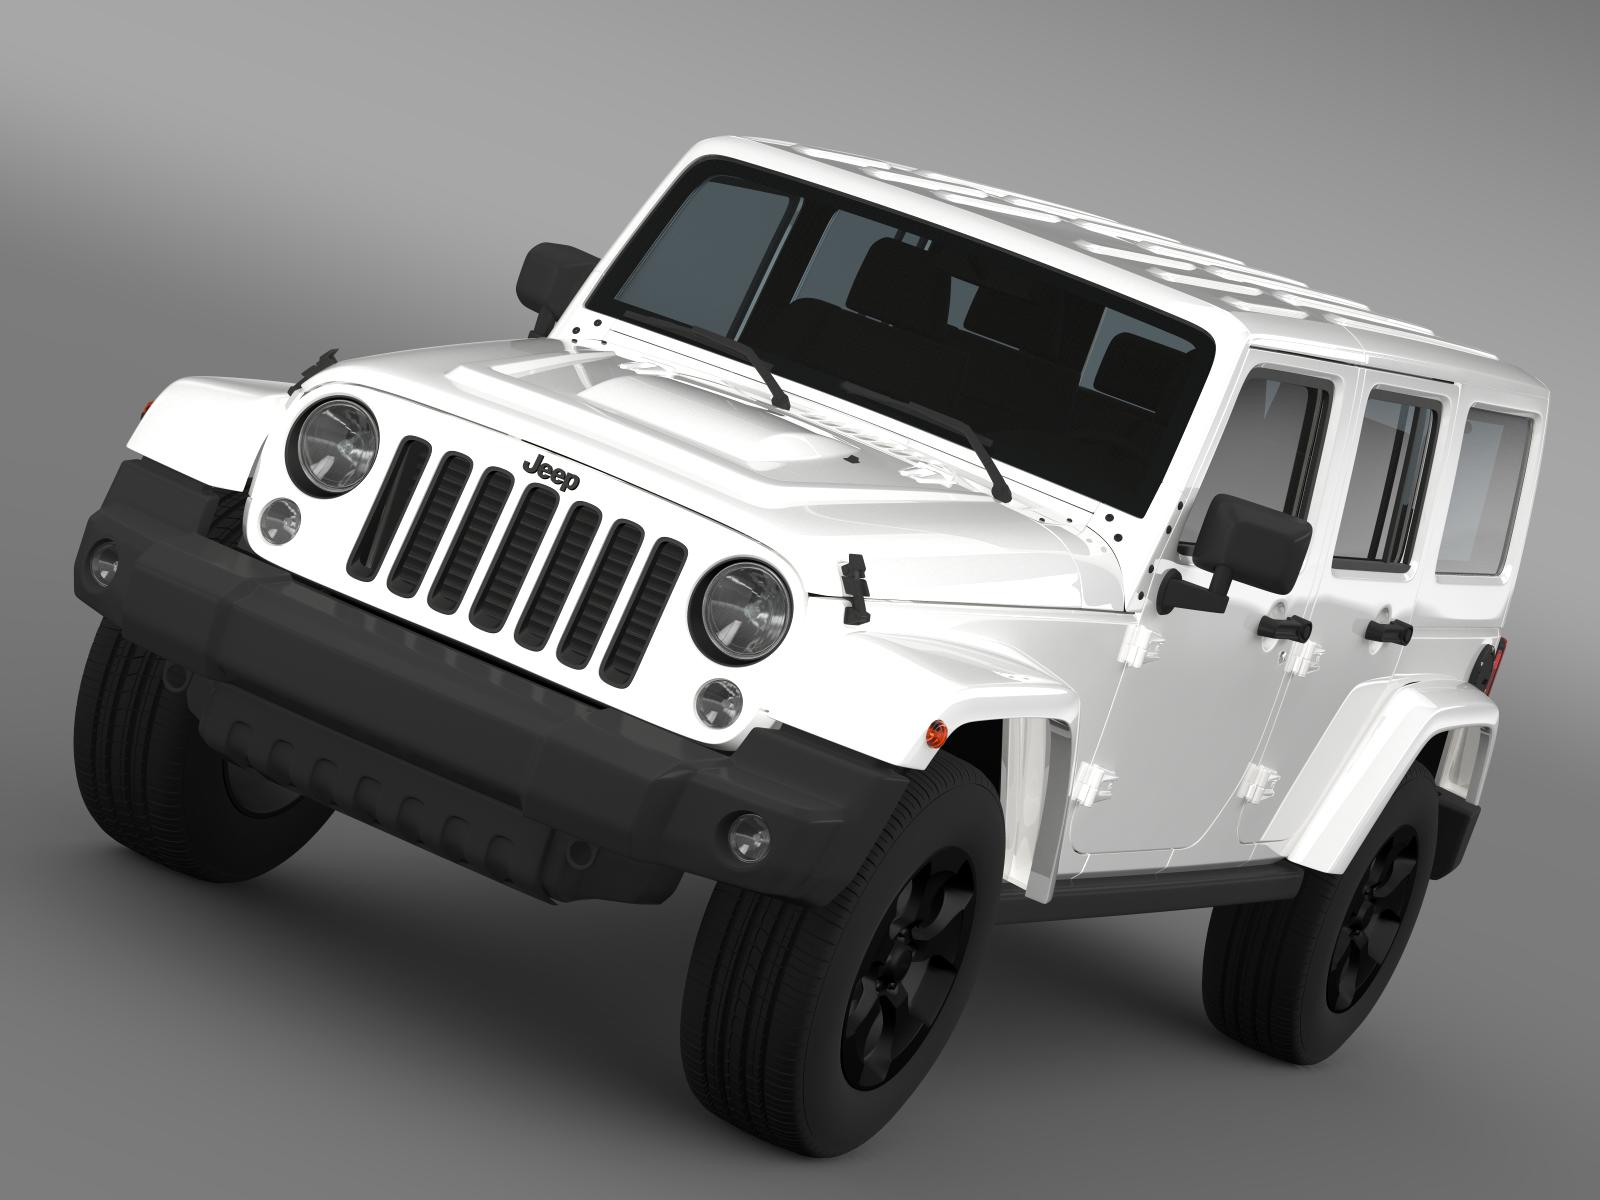 jeep wrangler black edition 2 2015 3d model 3ds max fbx c4d lwo ma mb hrc xsi obj 207777